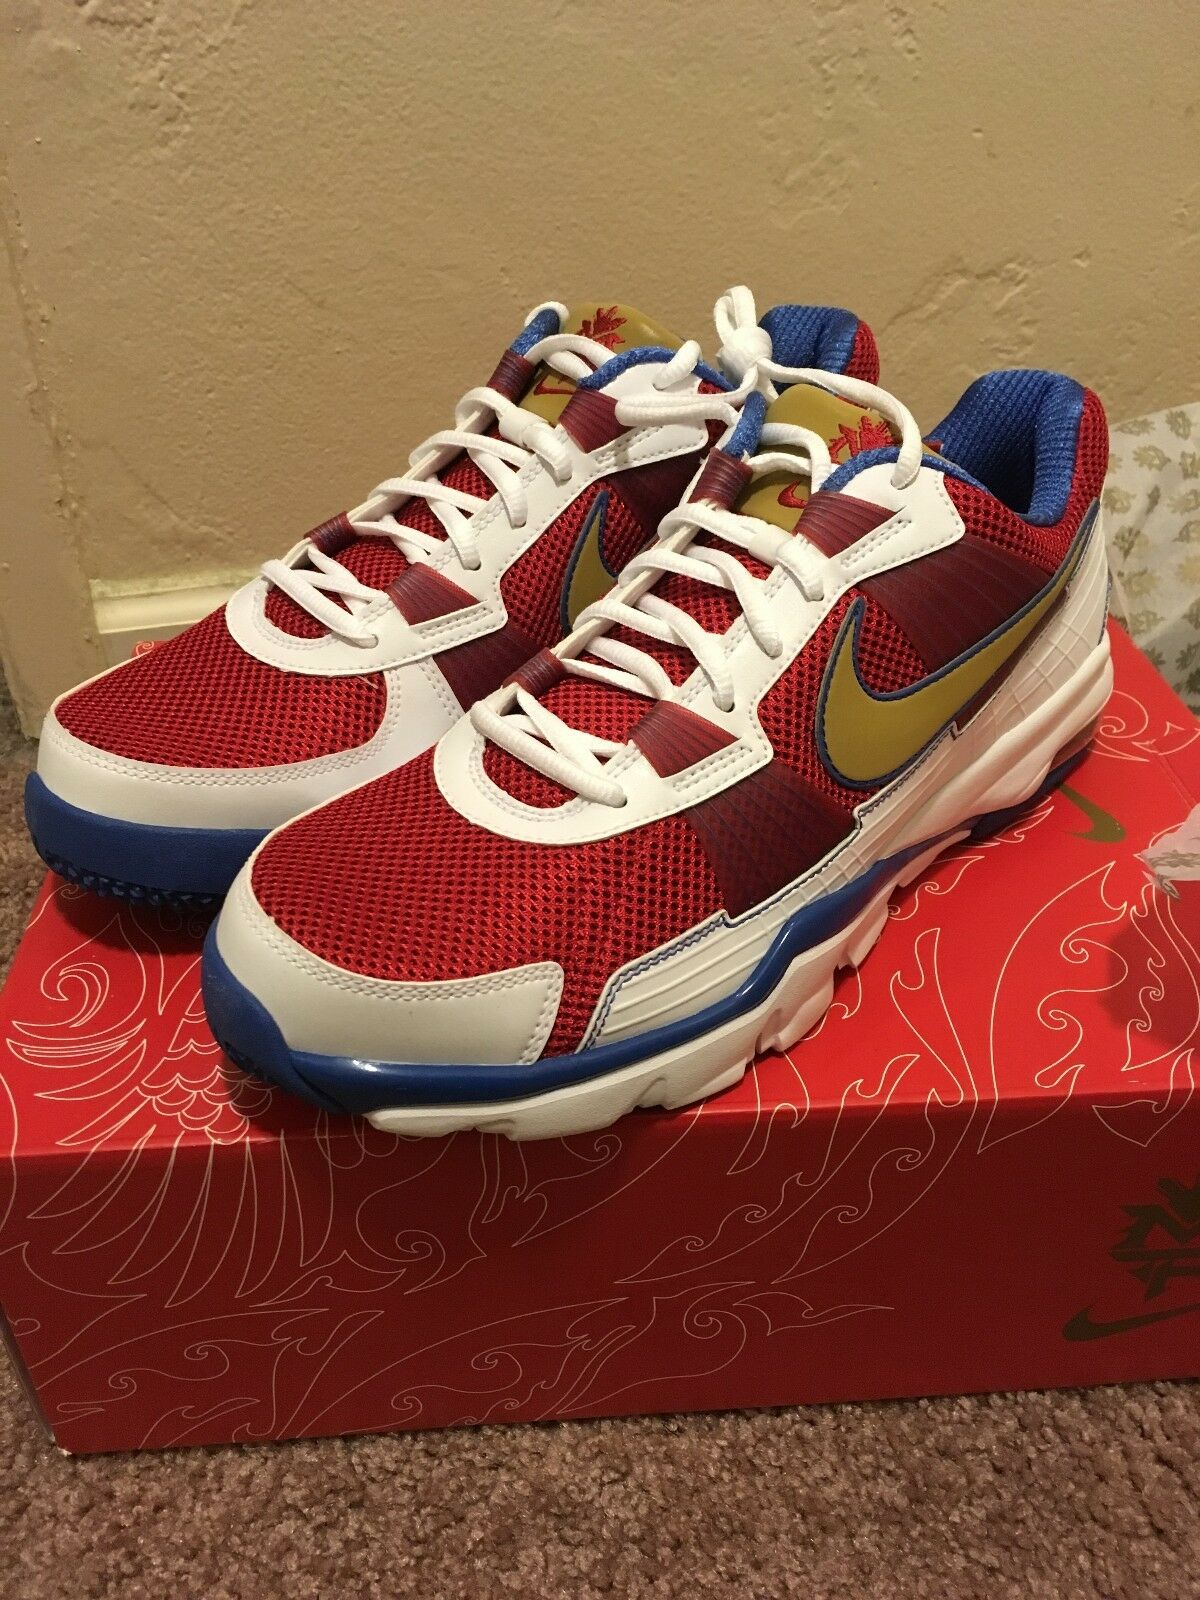 New 2018 Nike Air Max Trainer SC Low 407846-176 Pac Man Manny Pacquiao Comfortable Brand discount